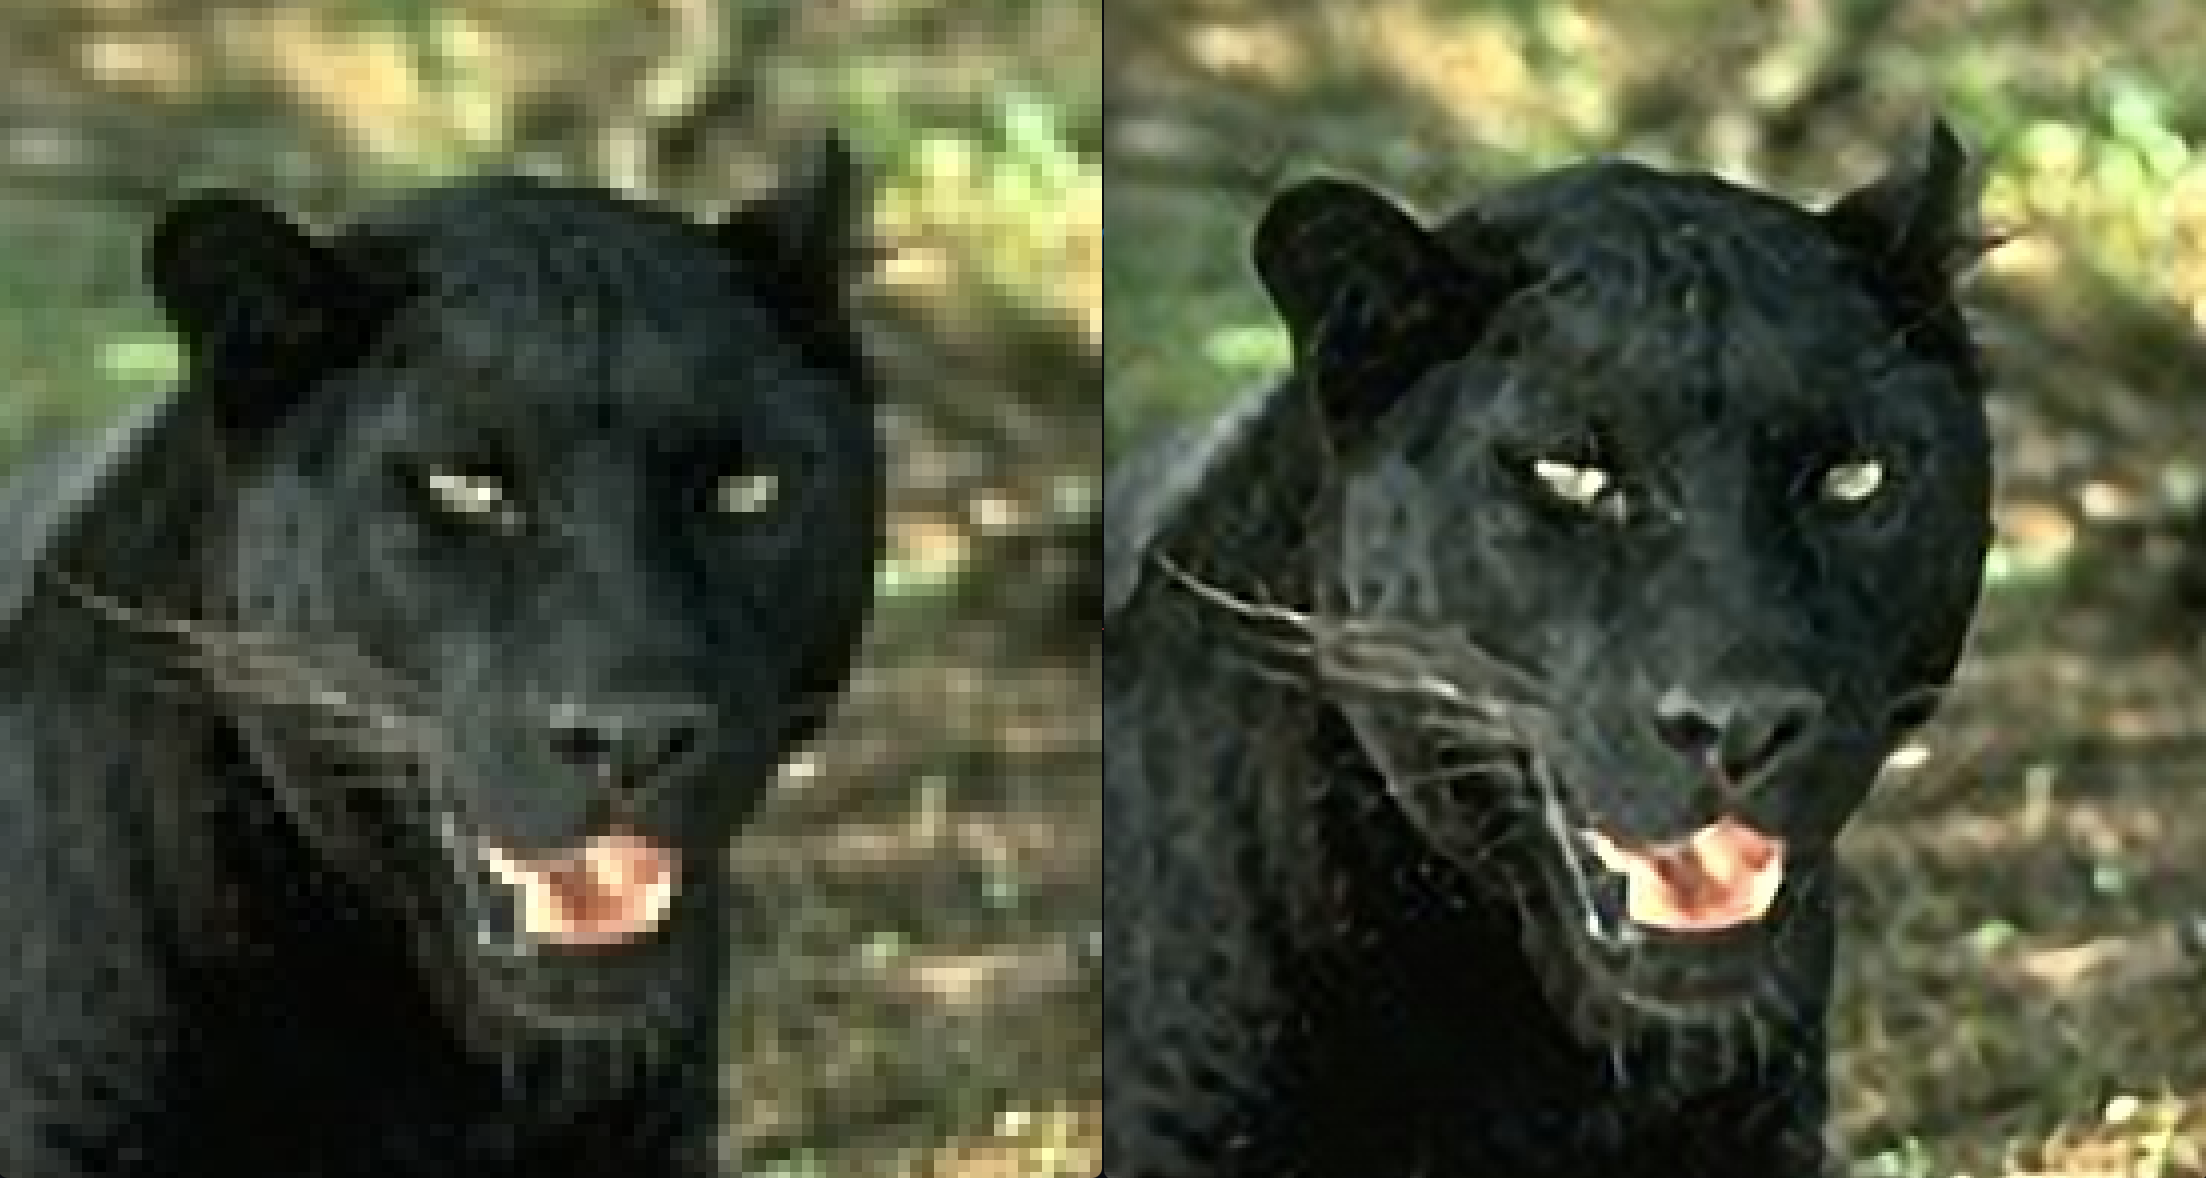 panther-side-by-side-1